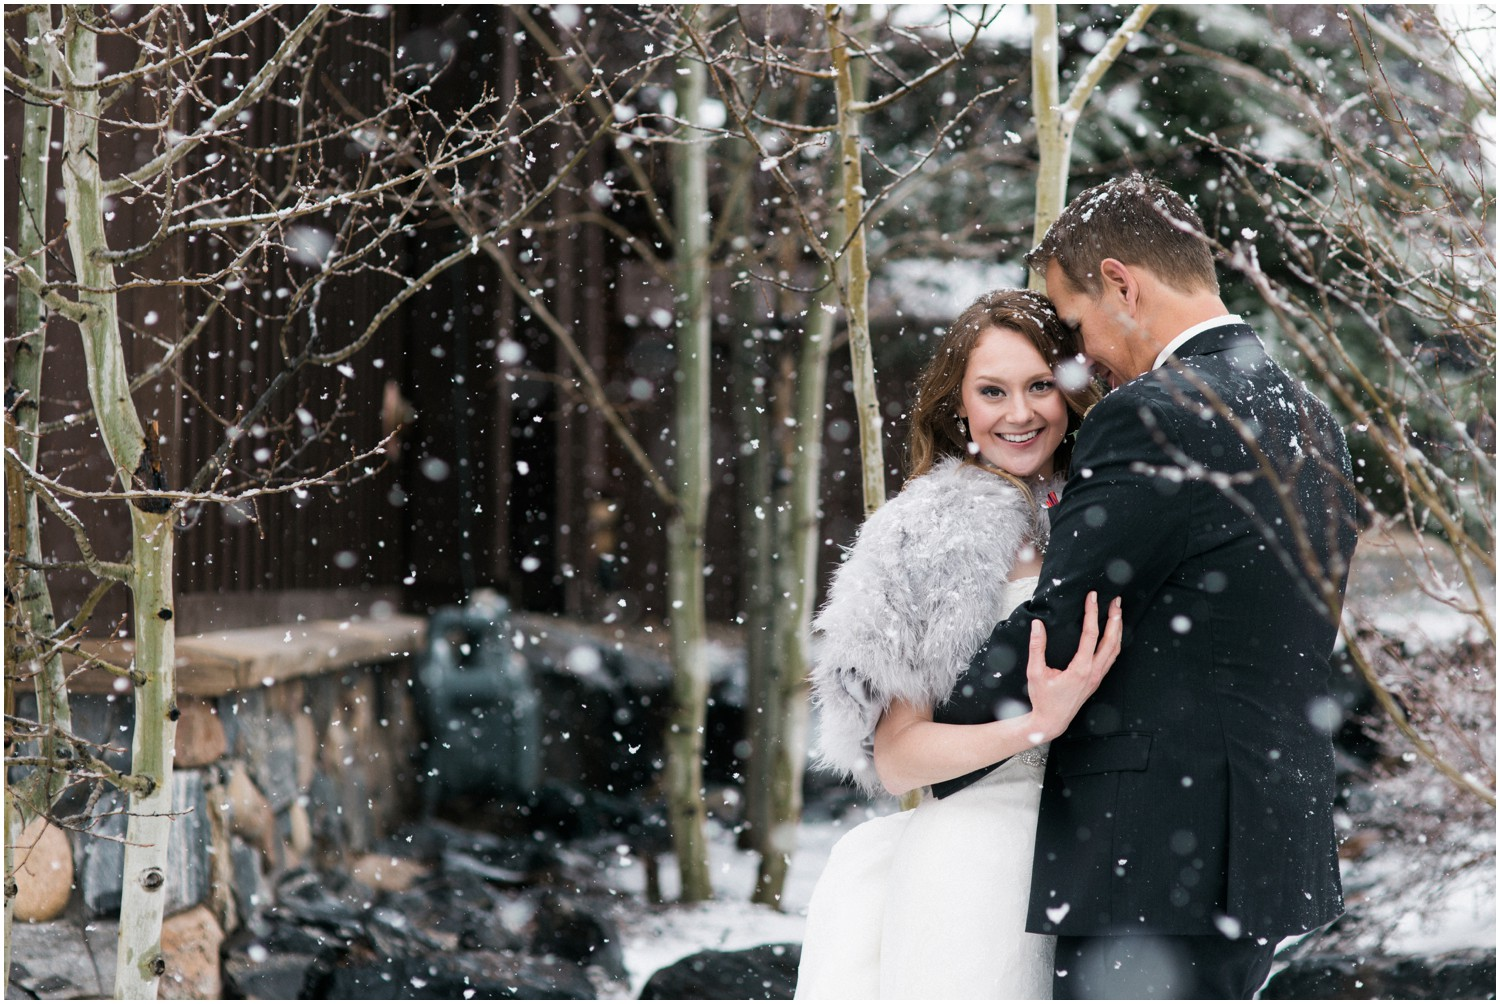 Devils-thumb-ranch-colorado-snowy-wedding-_0034.jpg